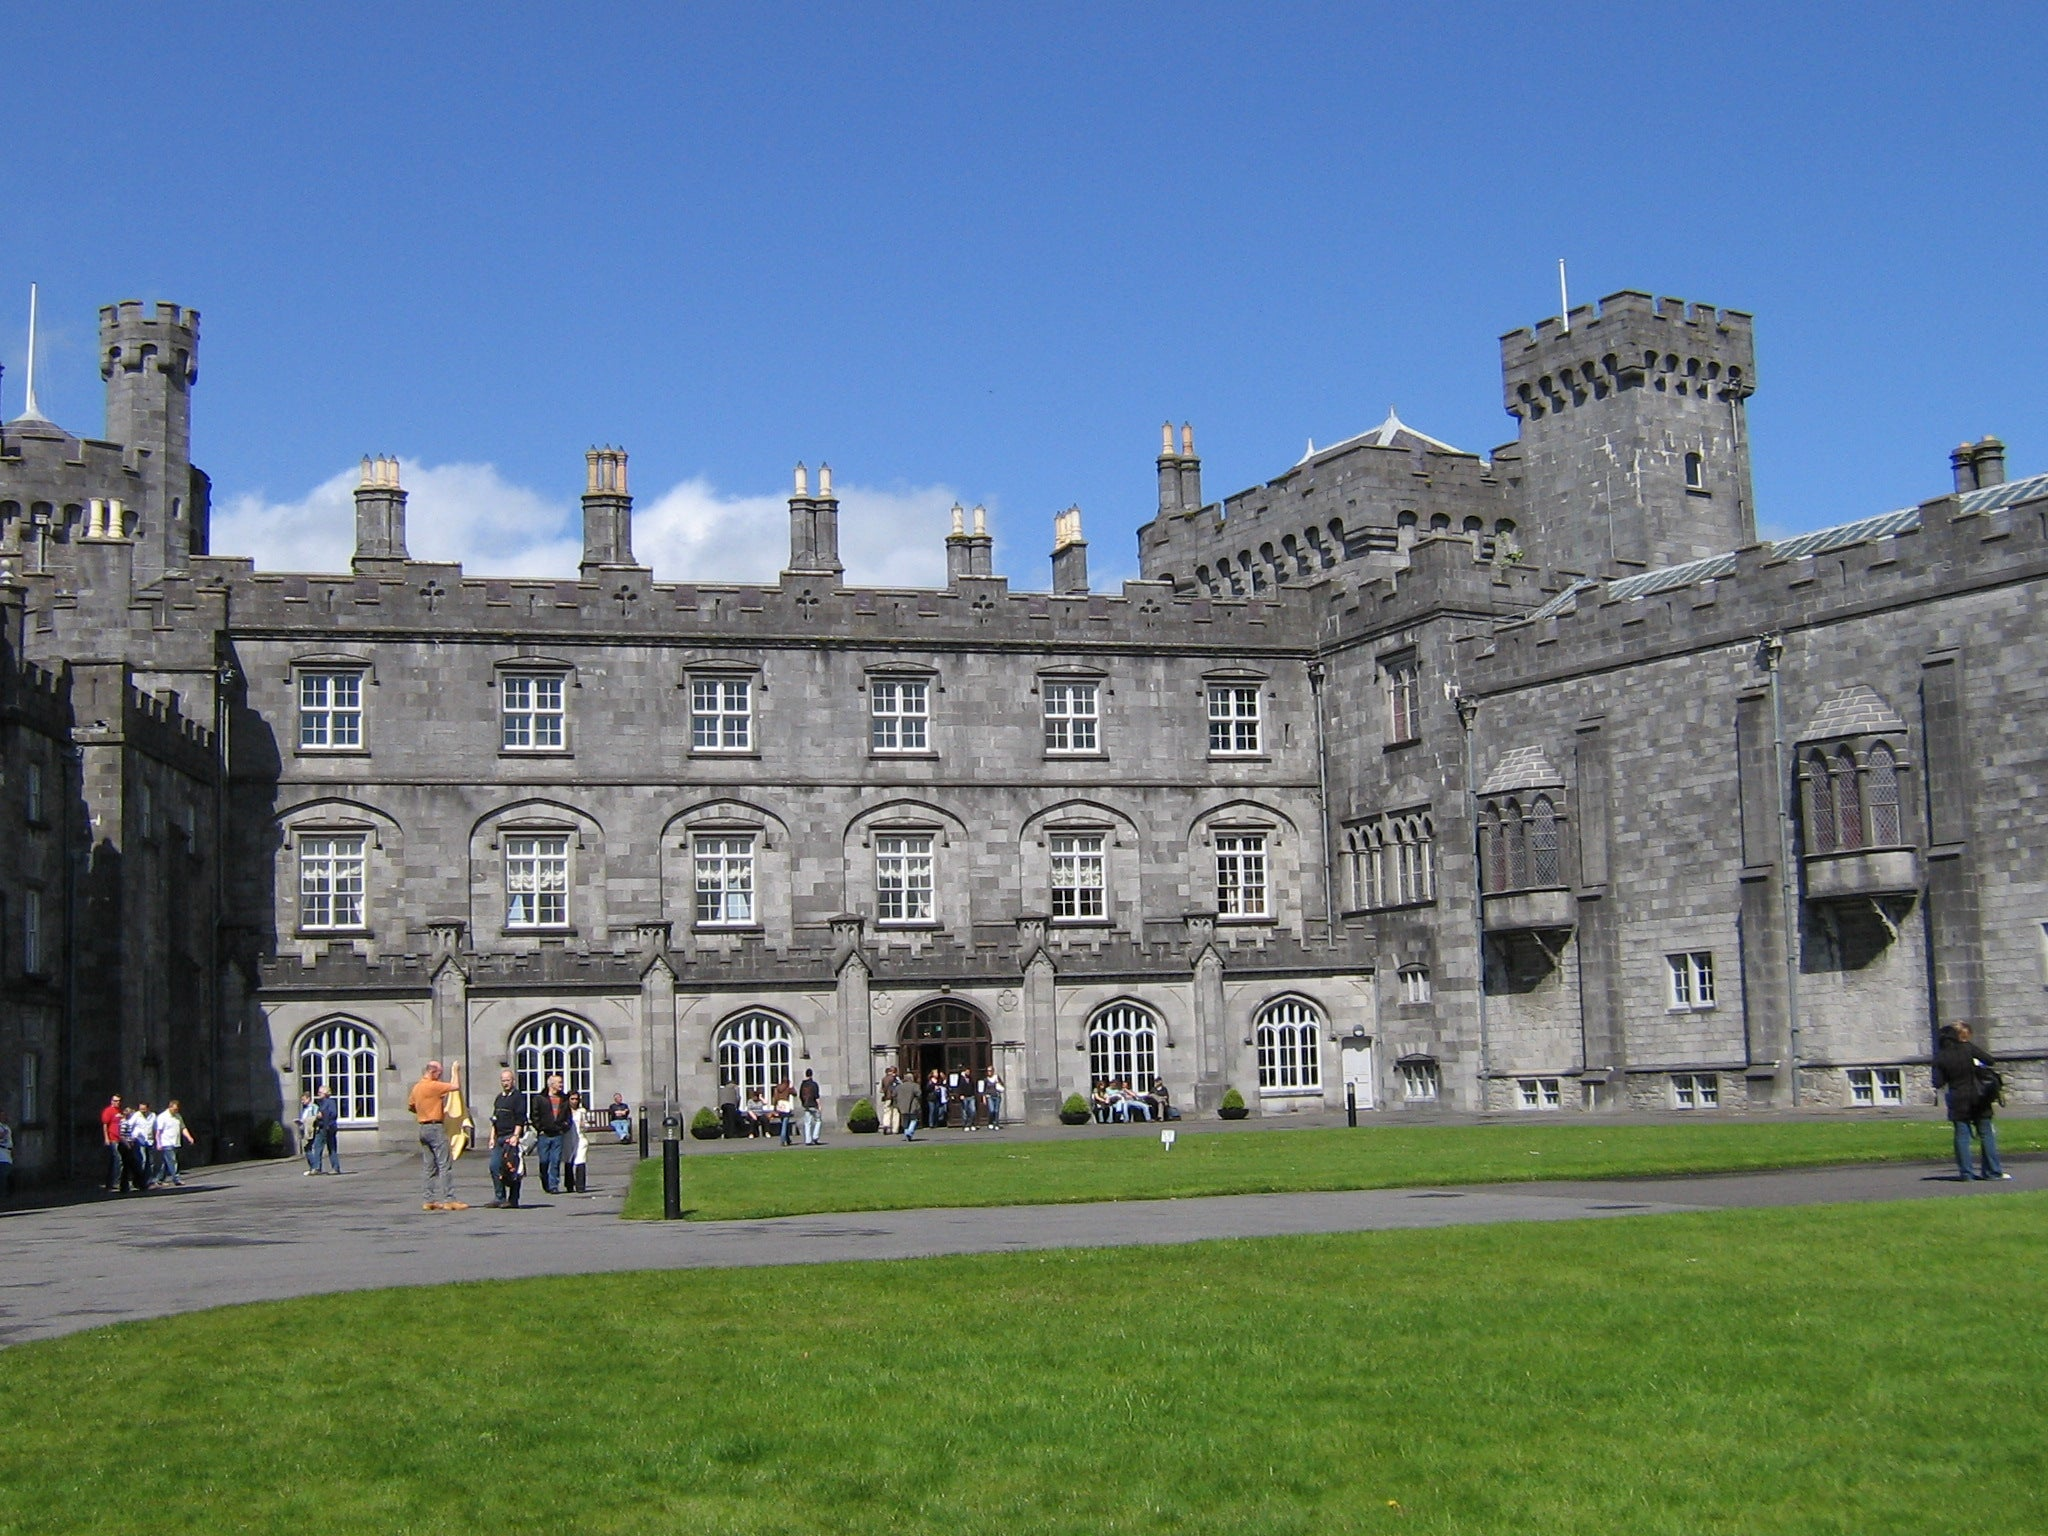 Patio en Castillo de Kilkenny